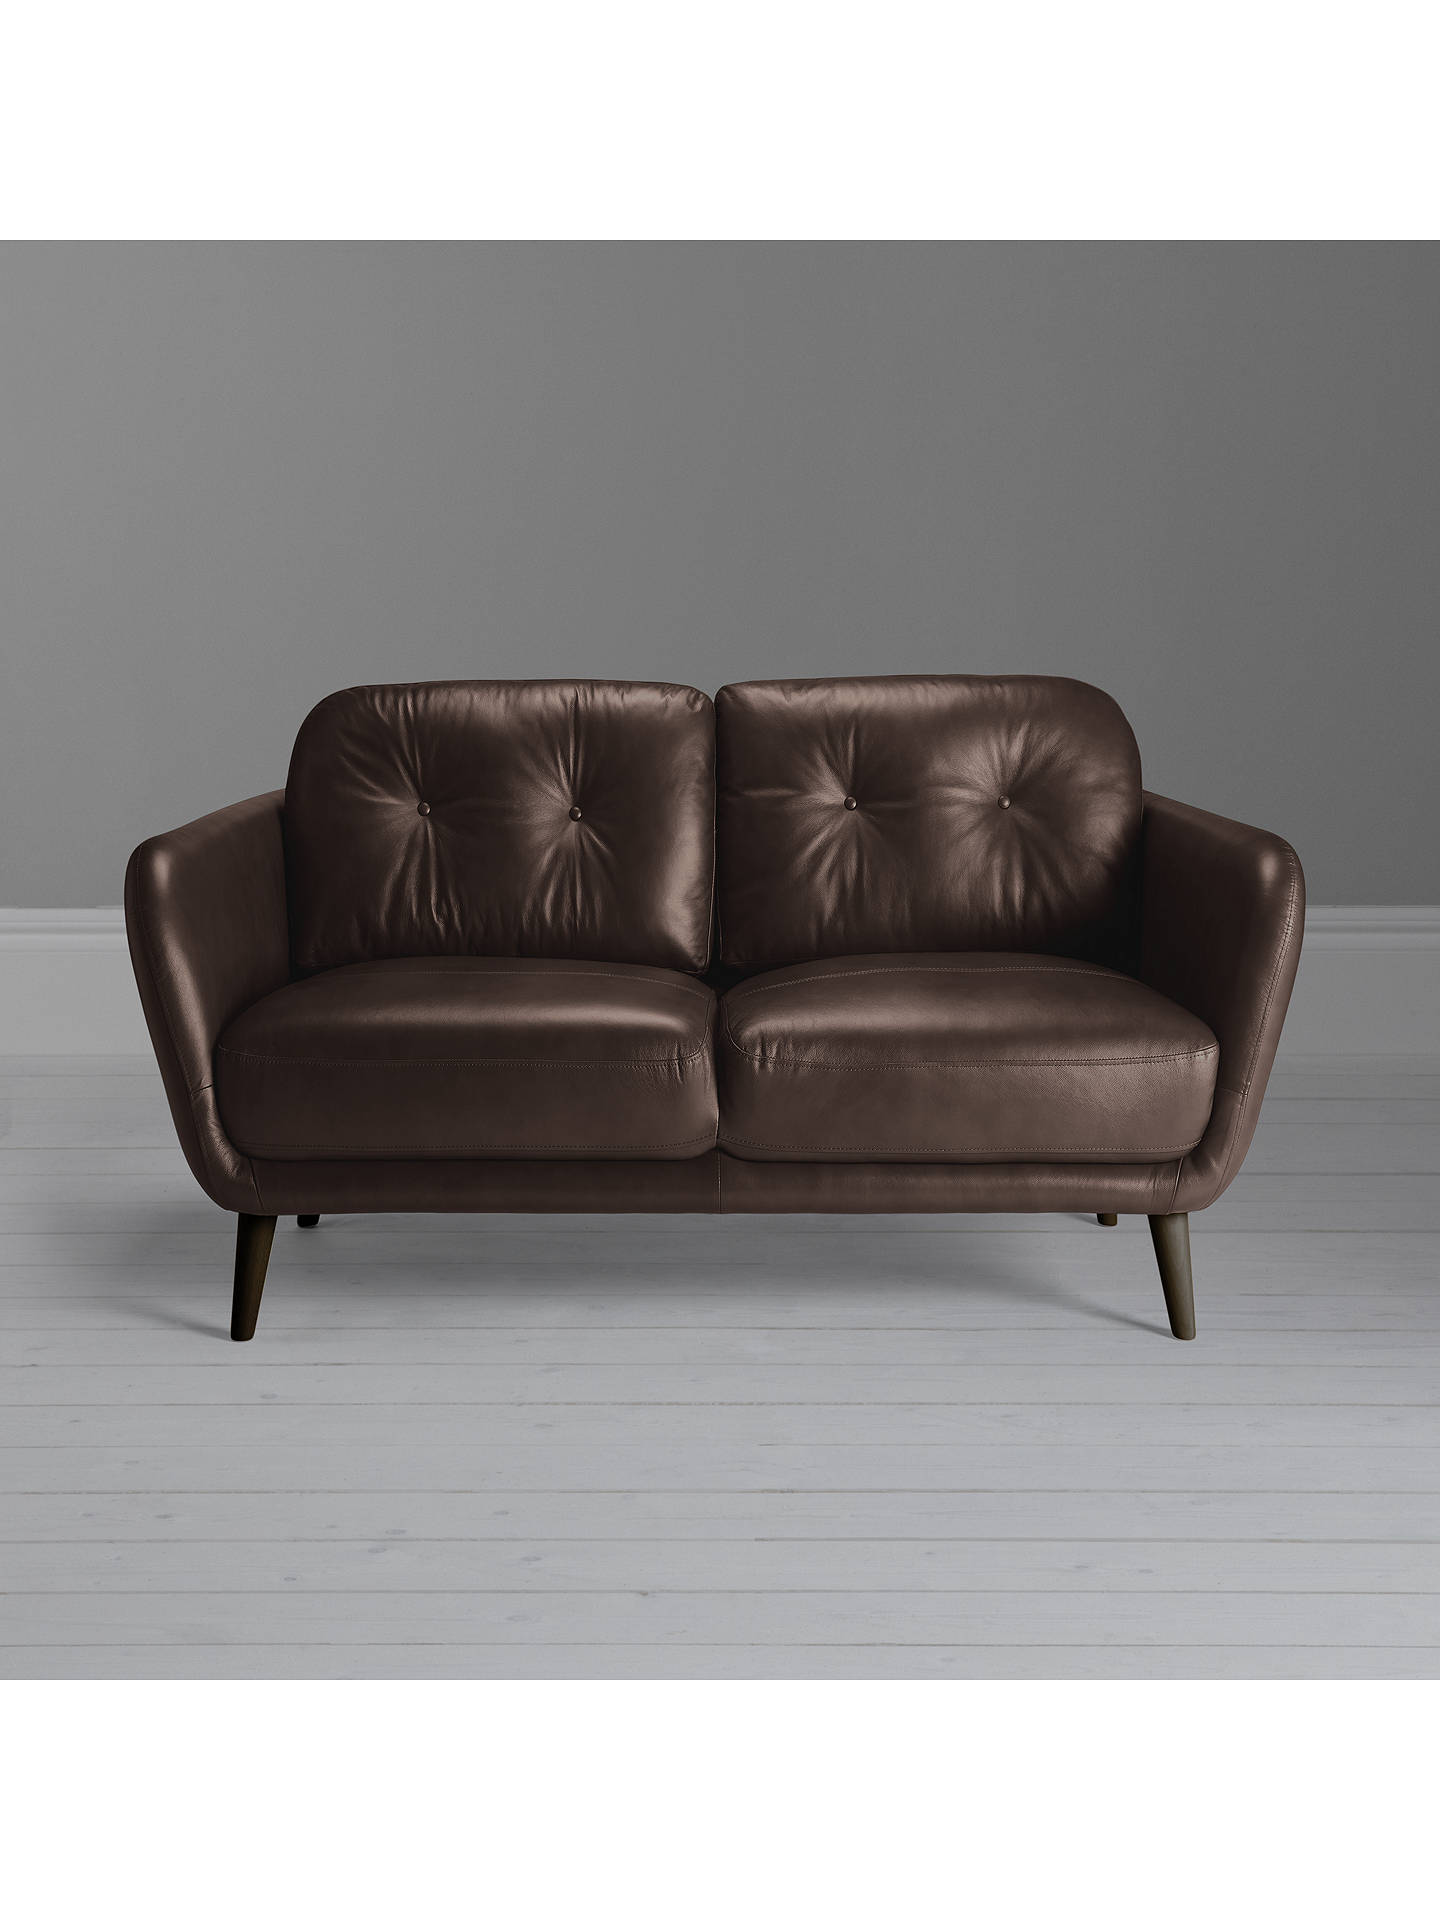 Buy House by John Lewis Arlo Small 2 Seater Leather Sofa, Dark Leg, Nature Brown Online at johnlewis.com